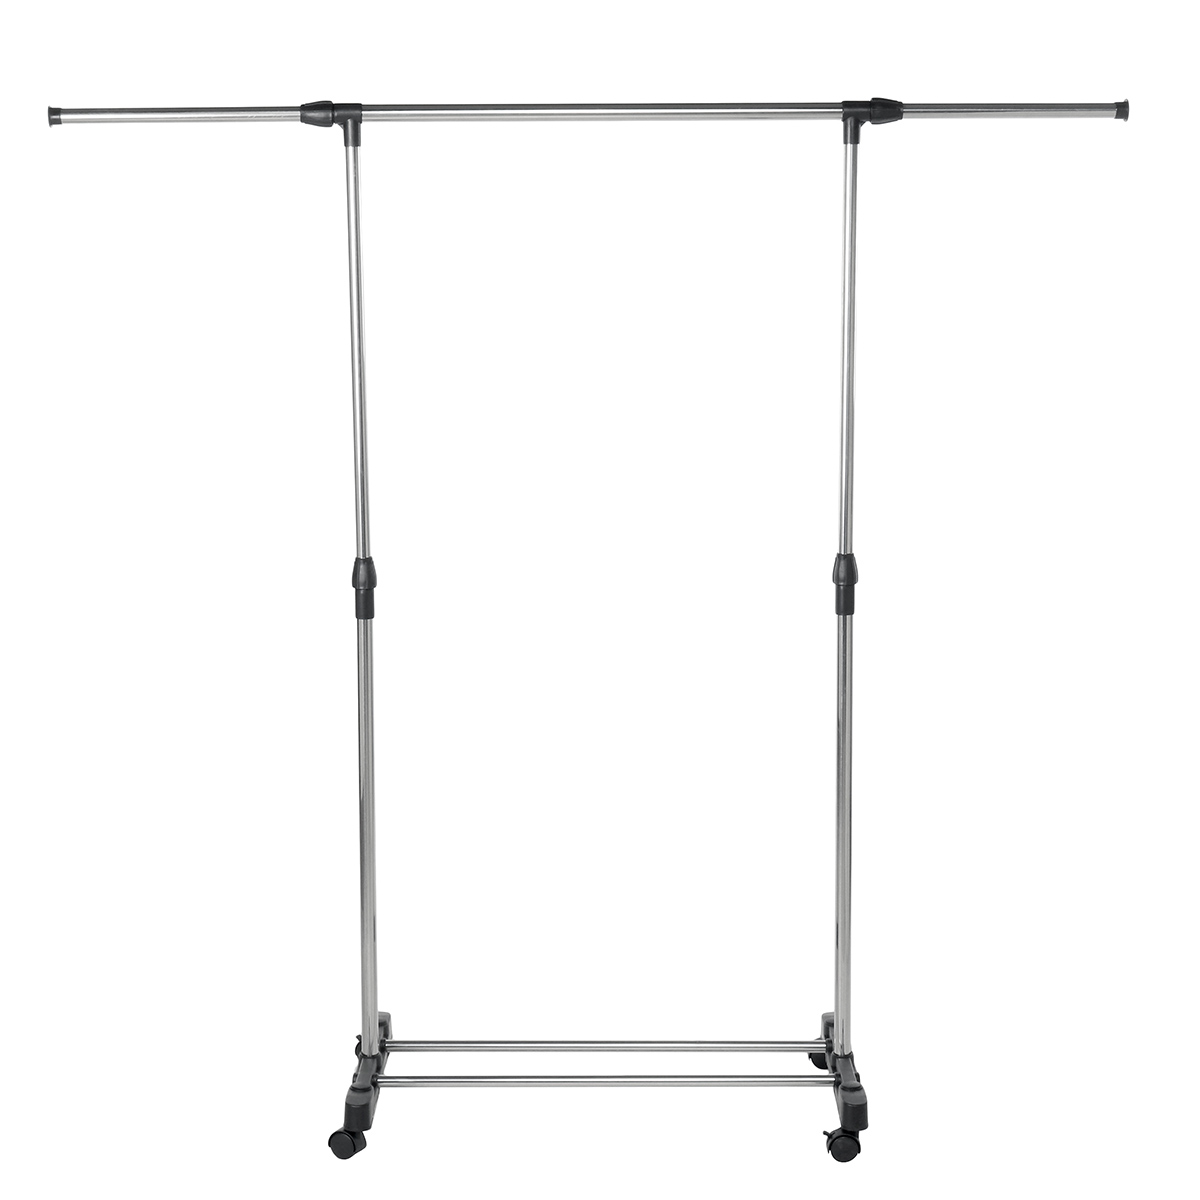 adjustable simple trending single double rod clothing garment rack rolling clothes organizer on wheels for hanging clothes chrome